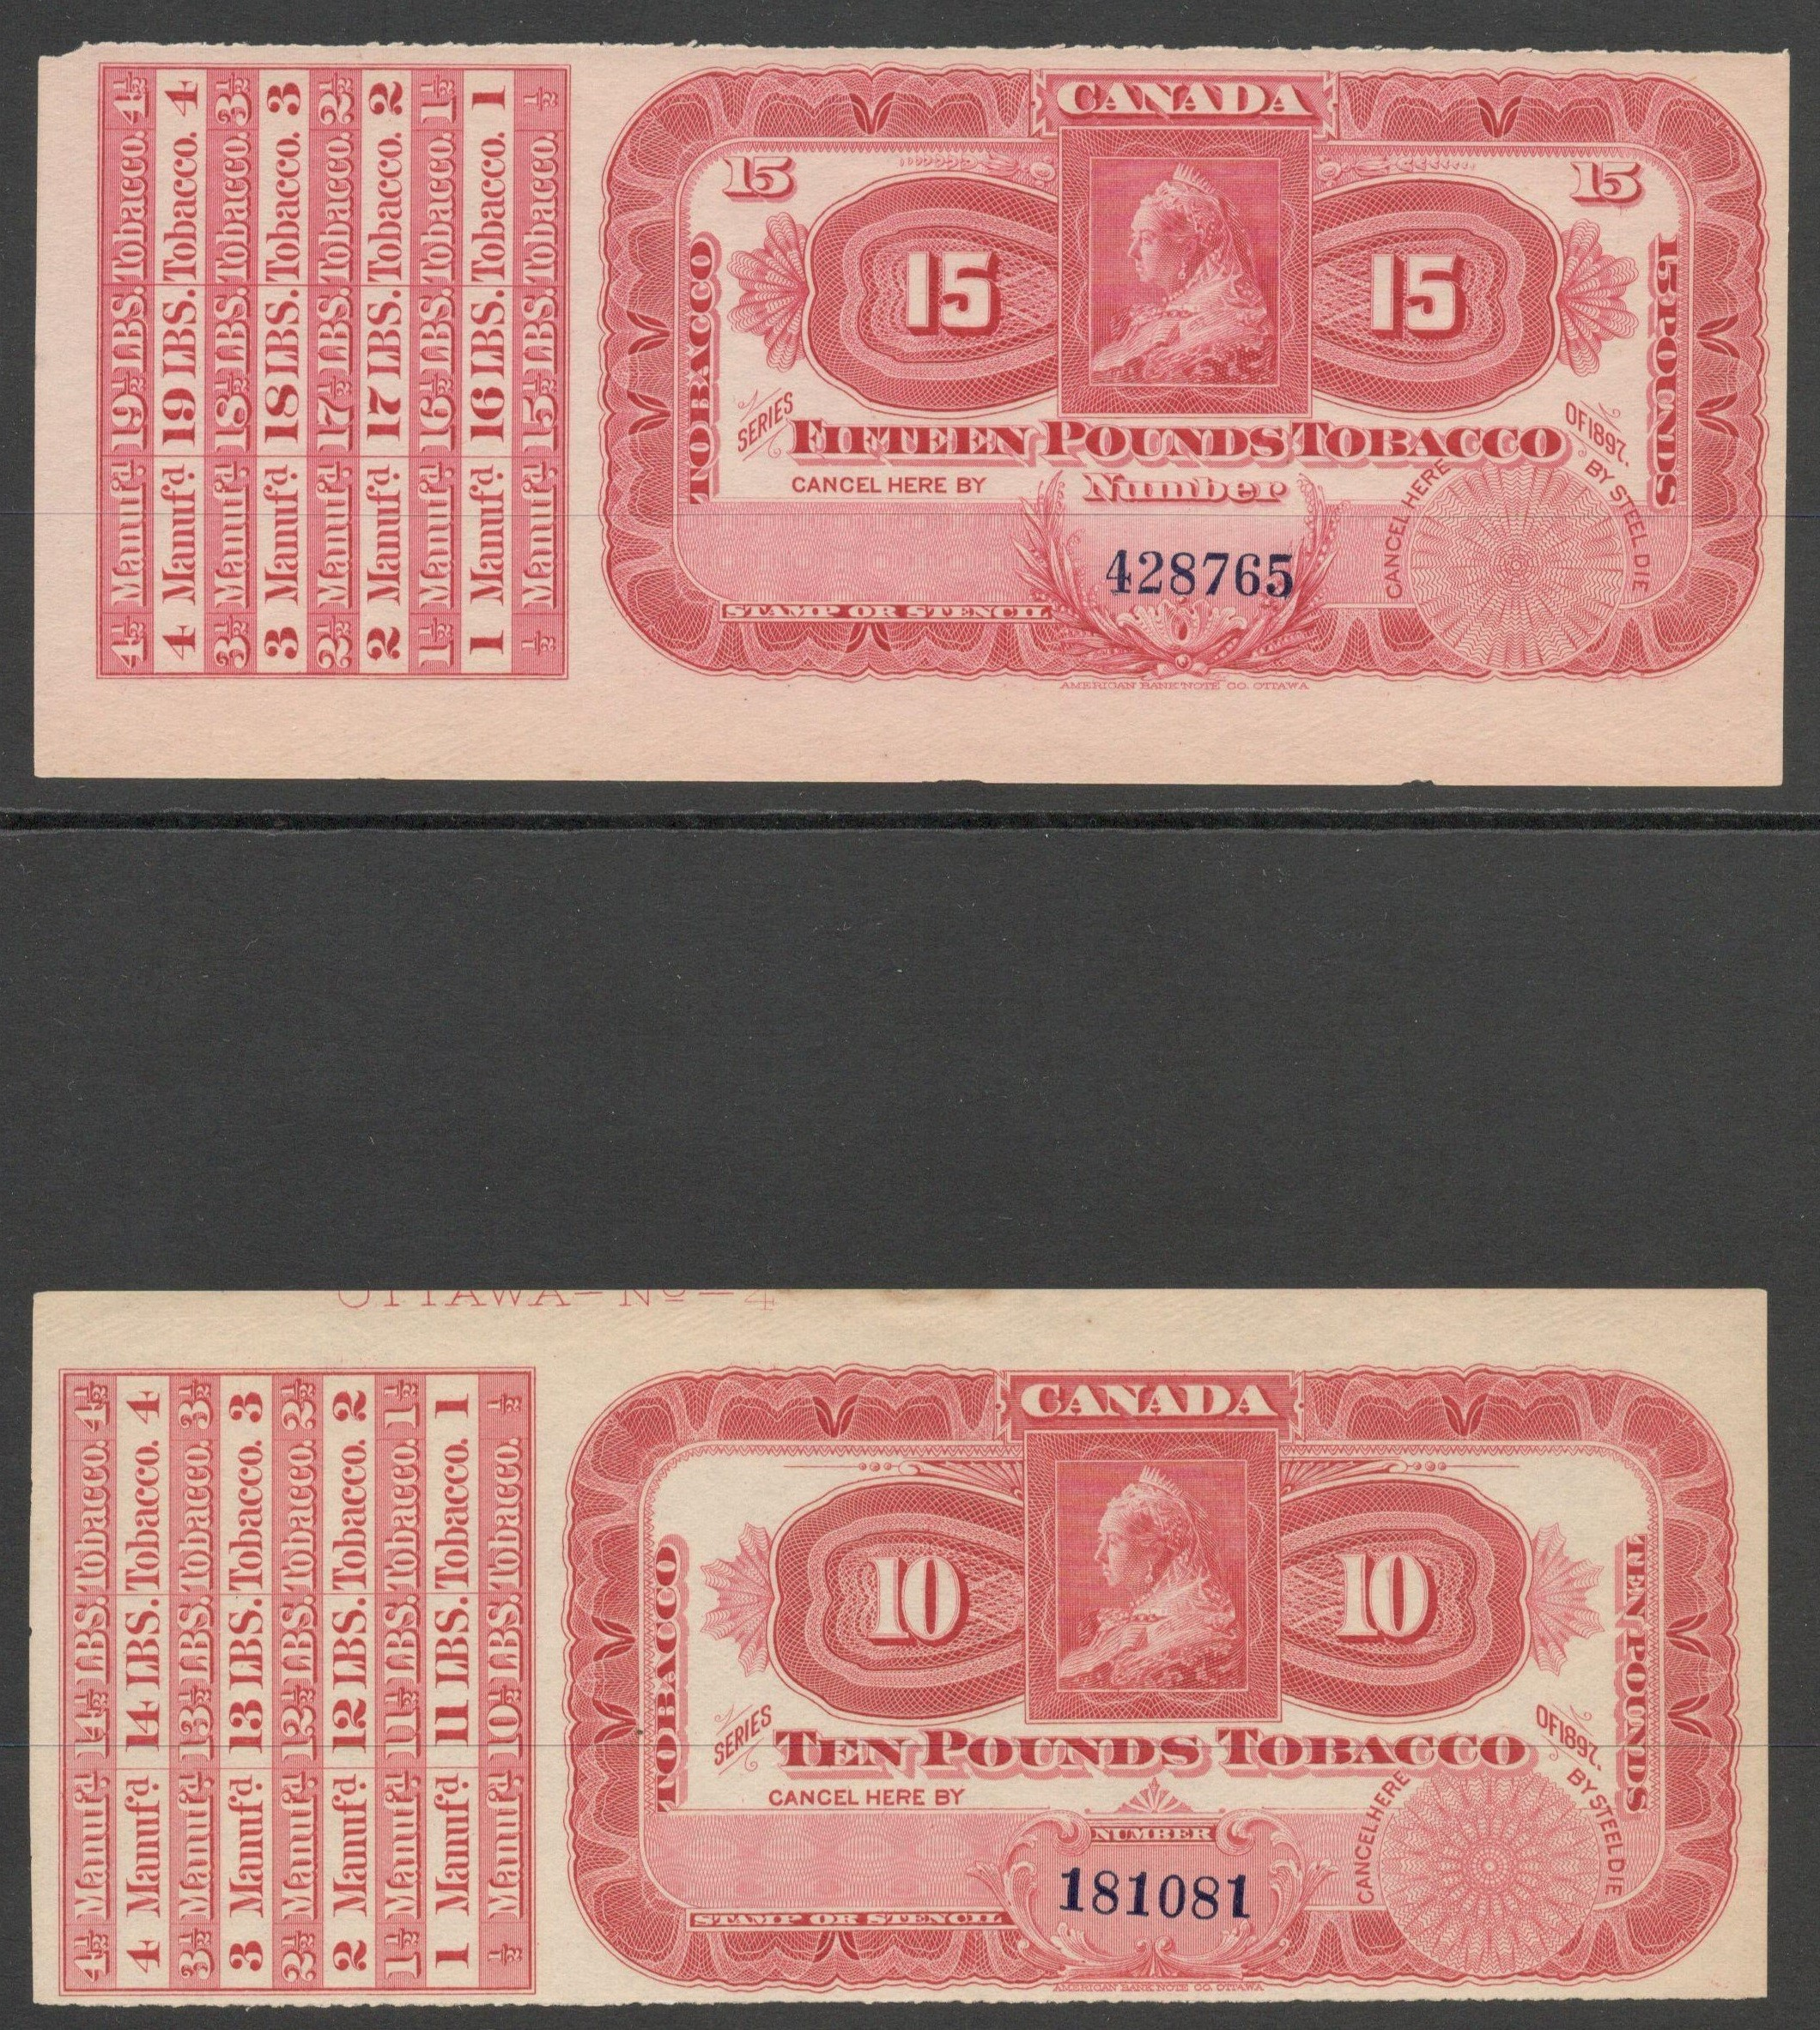 Lot 30 - QV CANADA EXCISE STAMPS SERIES OF 1897 TEN & FIFTEEN POUNDS TOBACCO